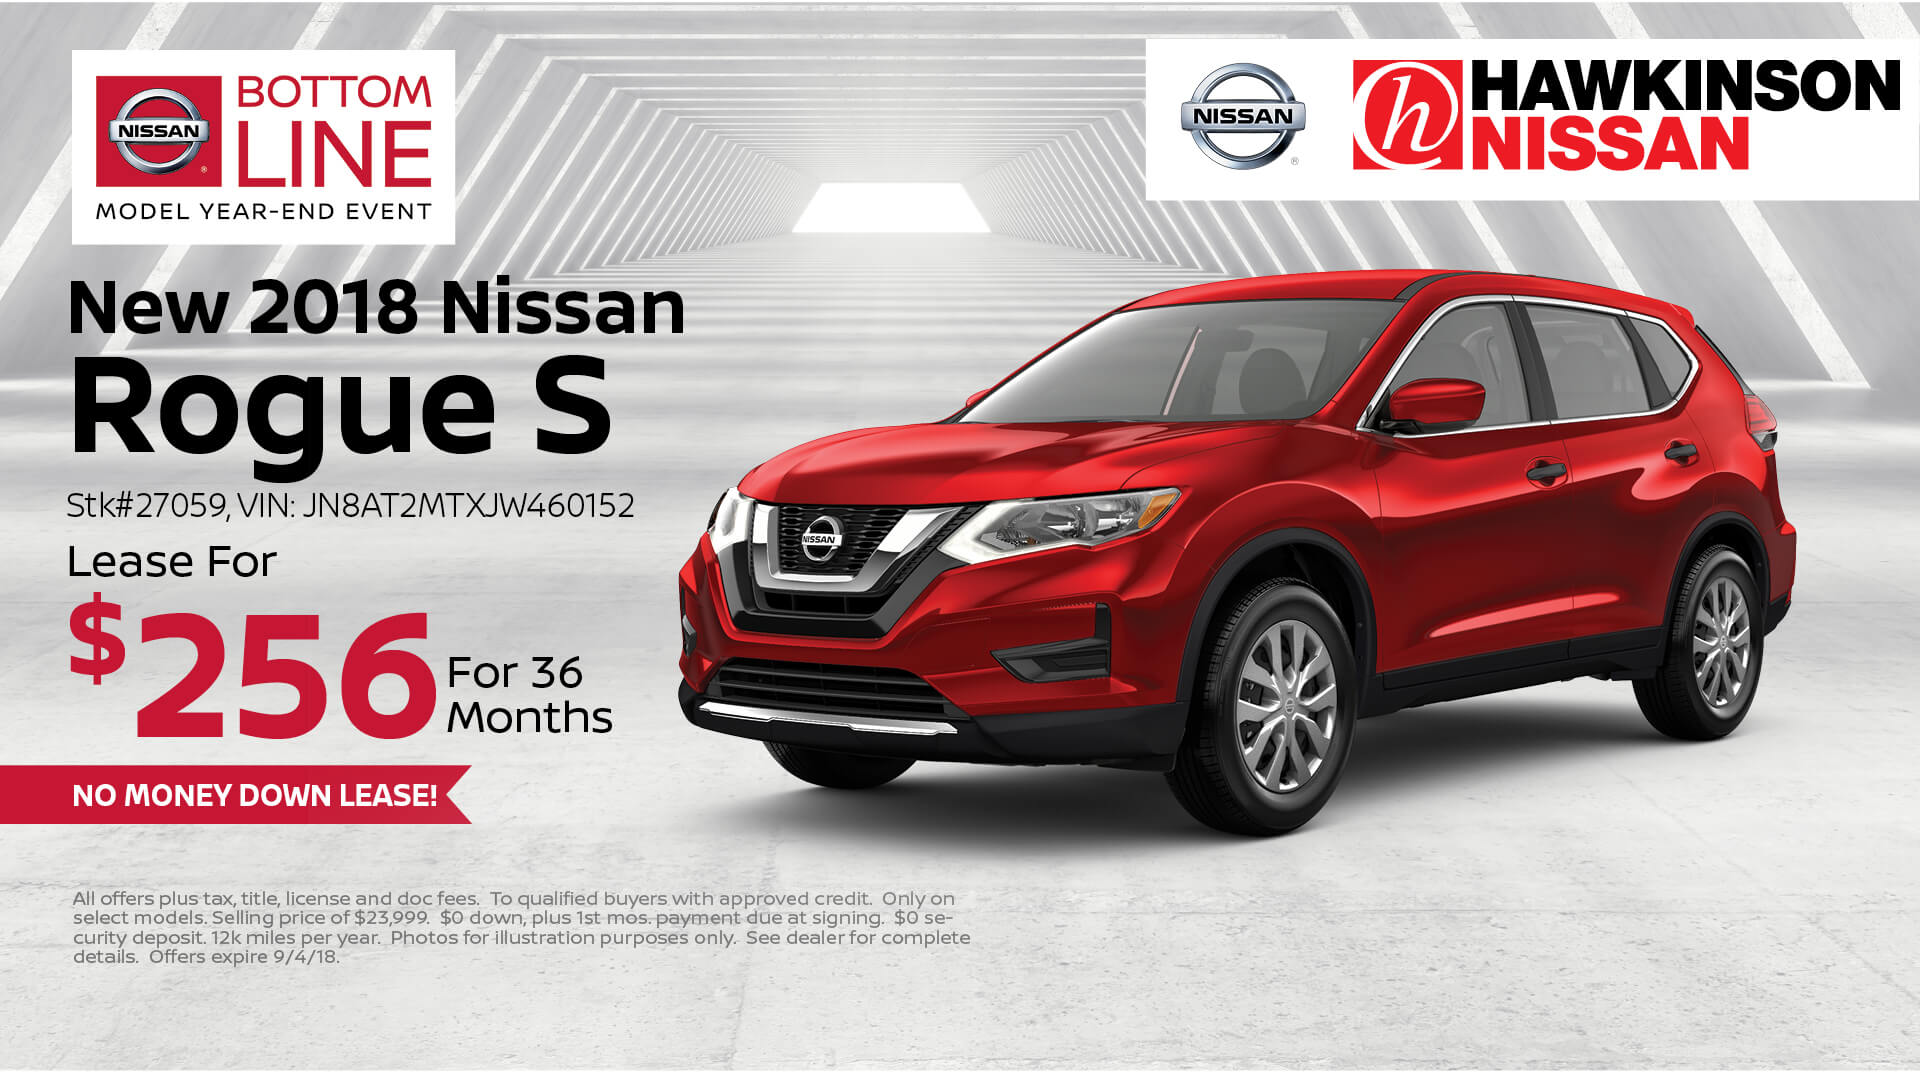 2018 Nissan Rogue S Special Offer